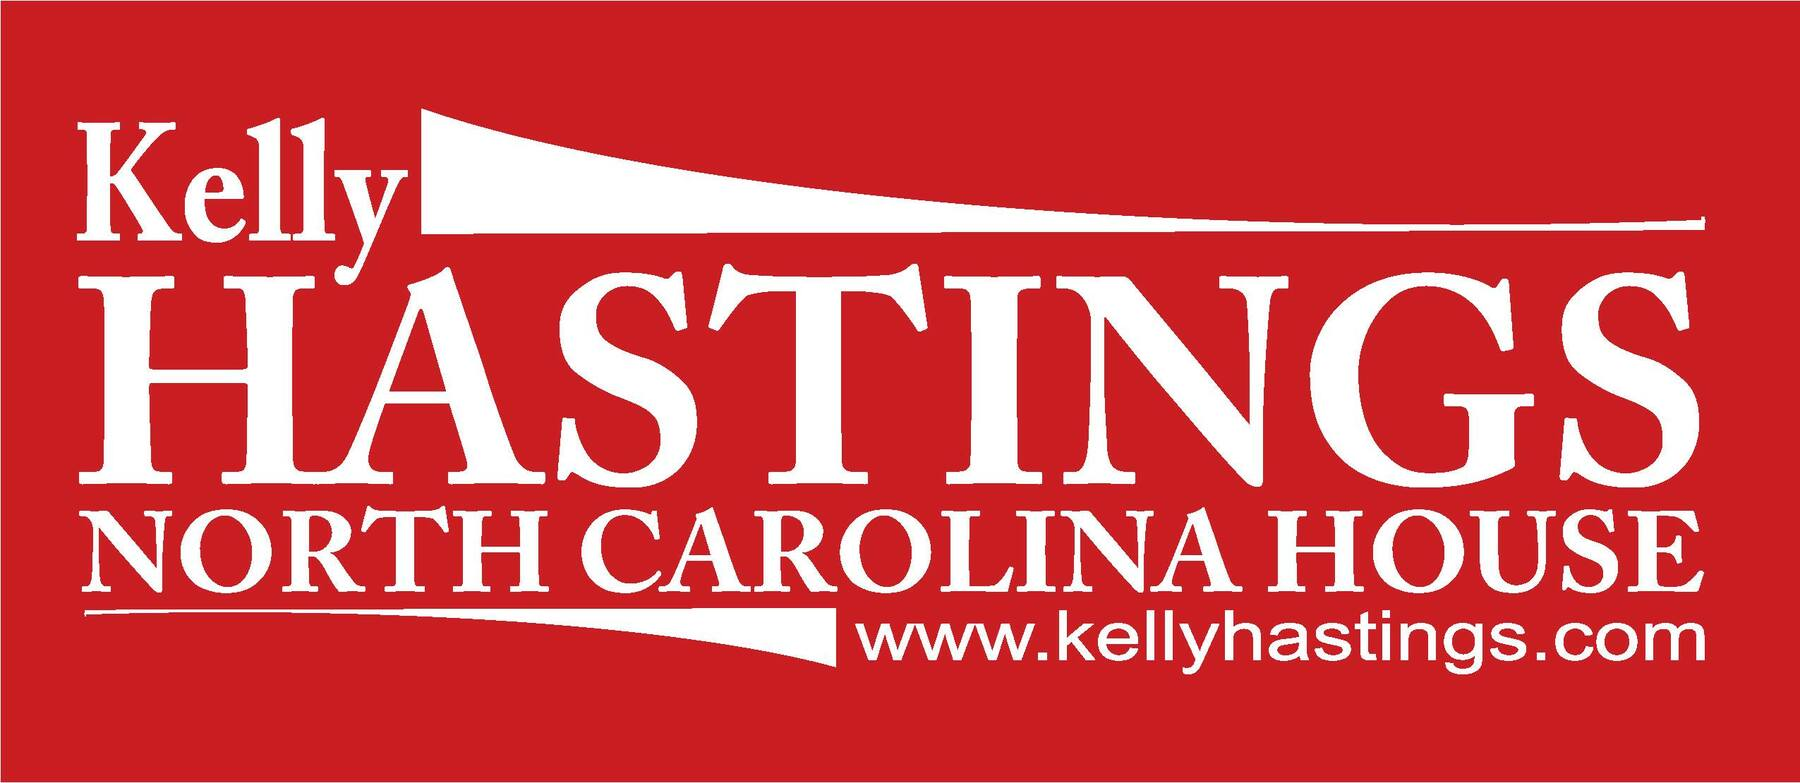 Friends of Kelly Hastings: General Fund